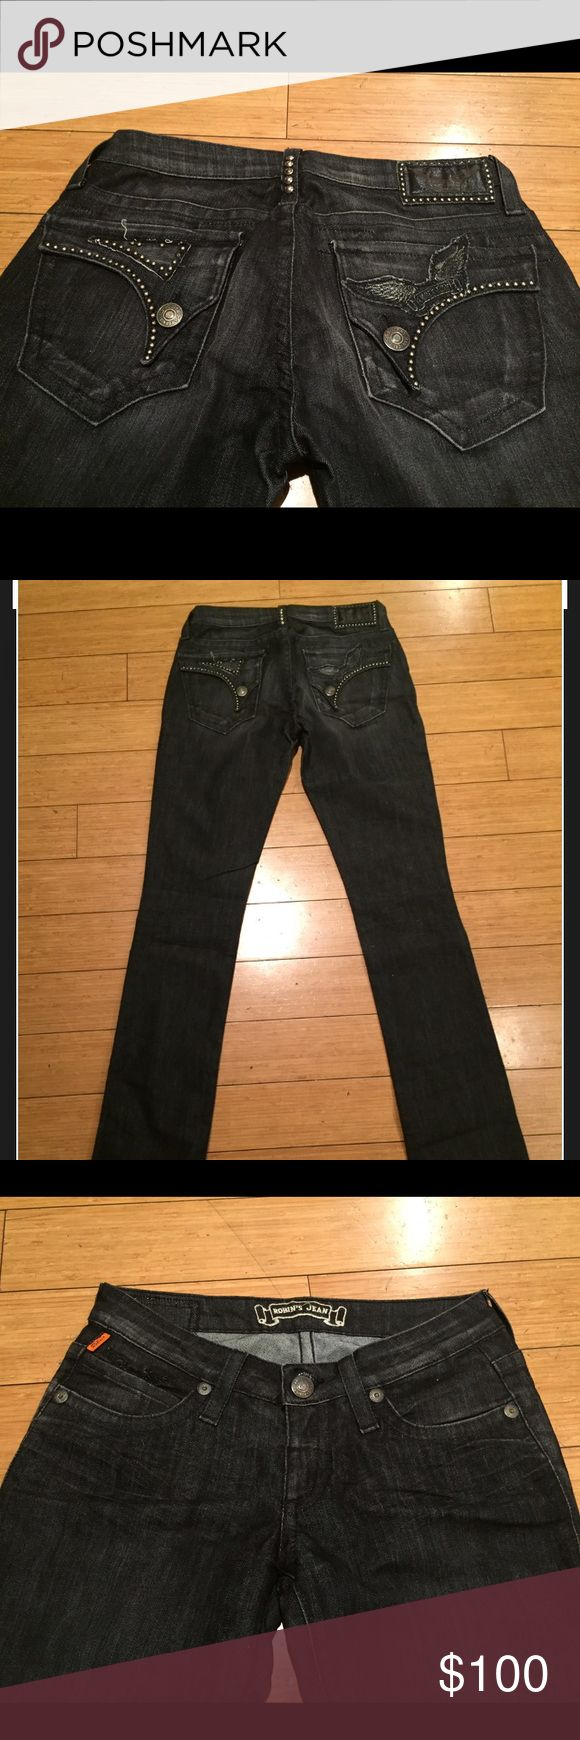 Designer Robin's Jeans. Great condition! Size 27. Black//Drk Gray Designer Robin's Jeans. Great condition! Size 27. Silver wing detail. Runs small. Not much stretch but fits amazing. Gives you a realy nice butt!!! 😍 Robin's Jean Jeans Straight Leg